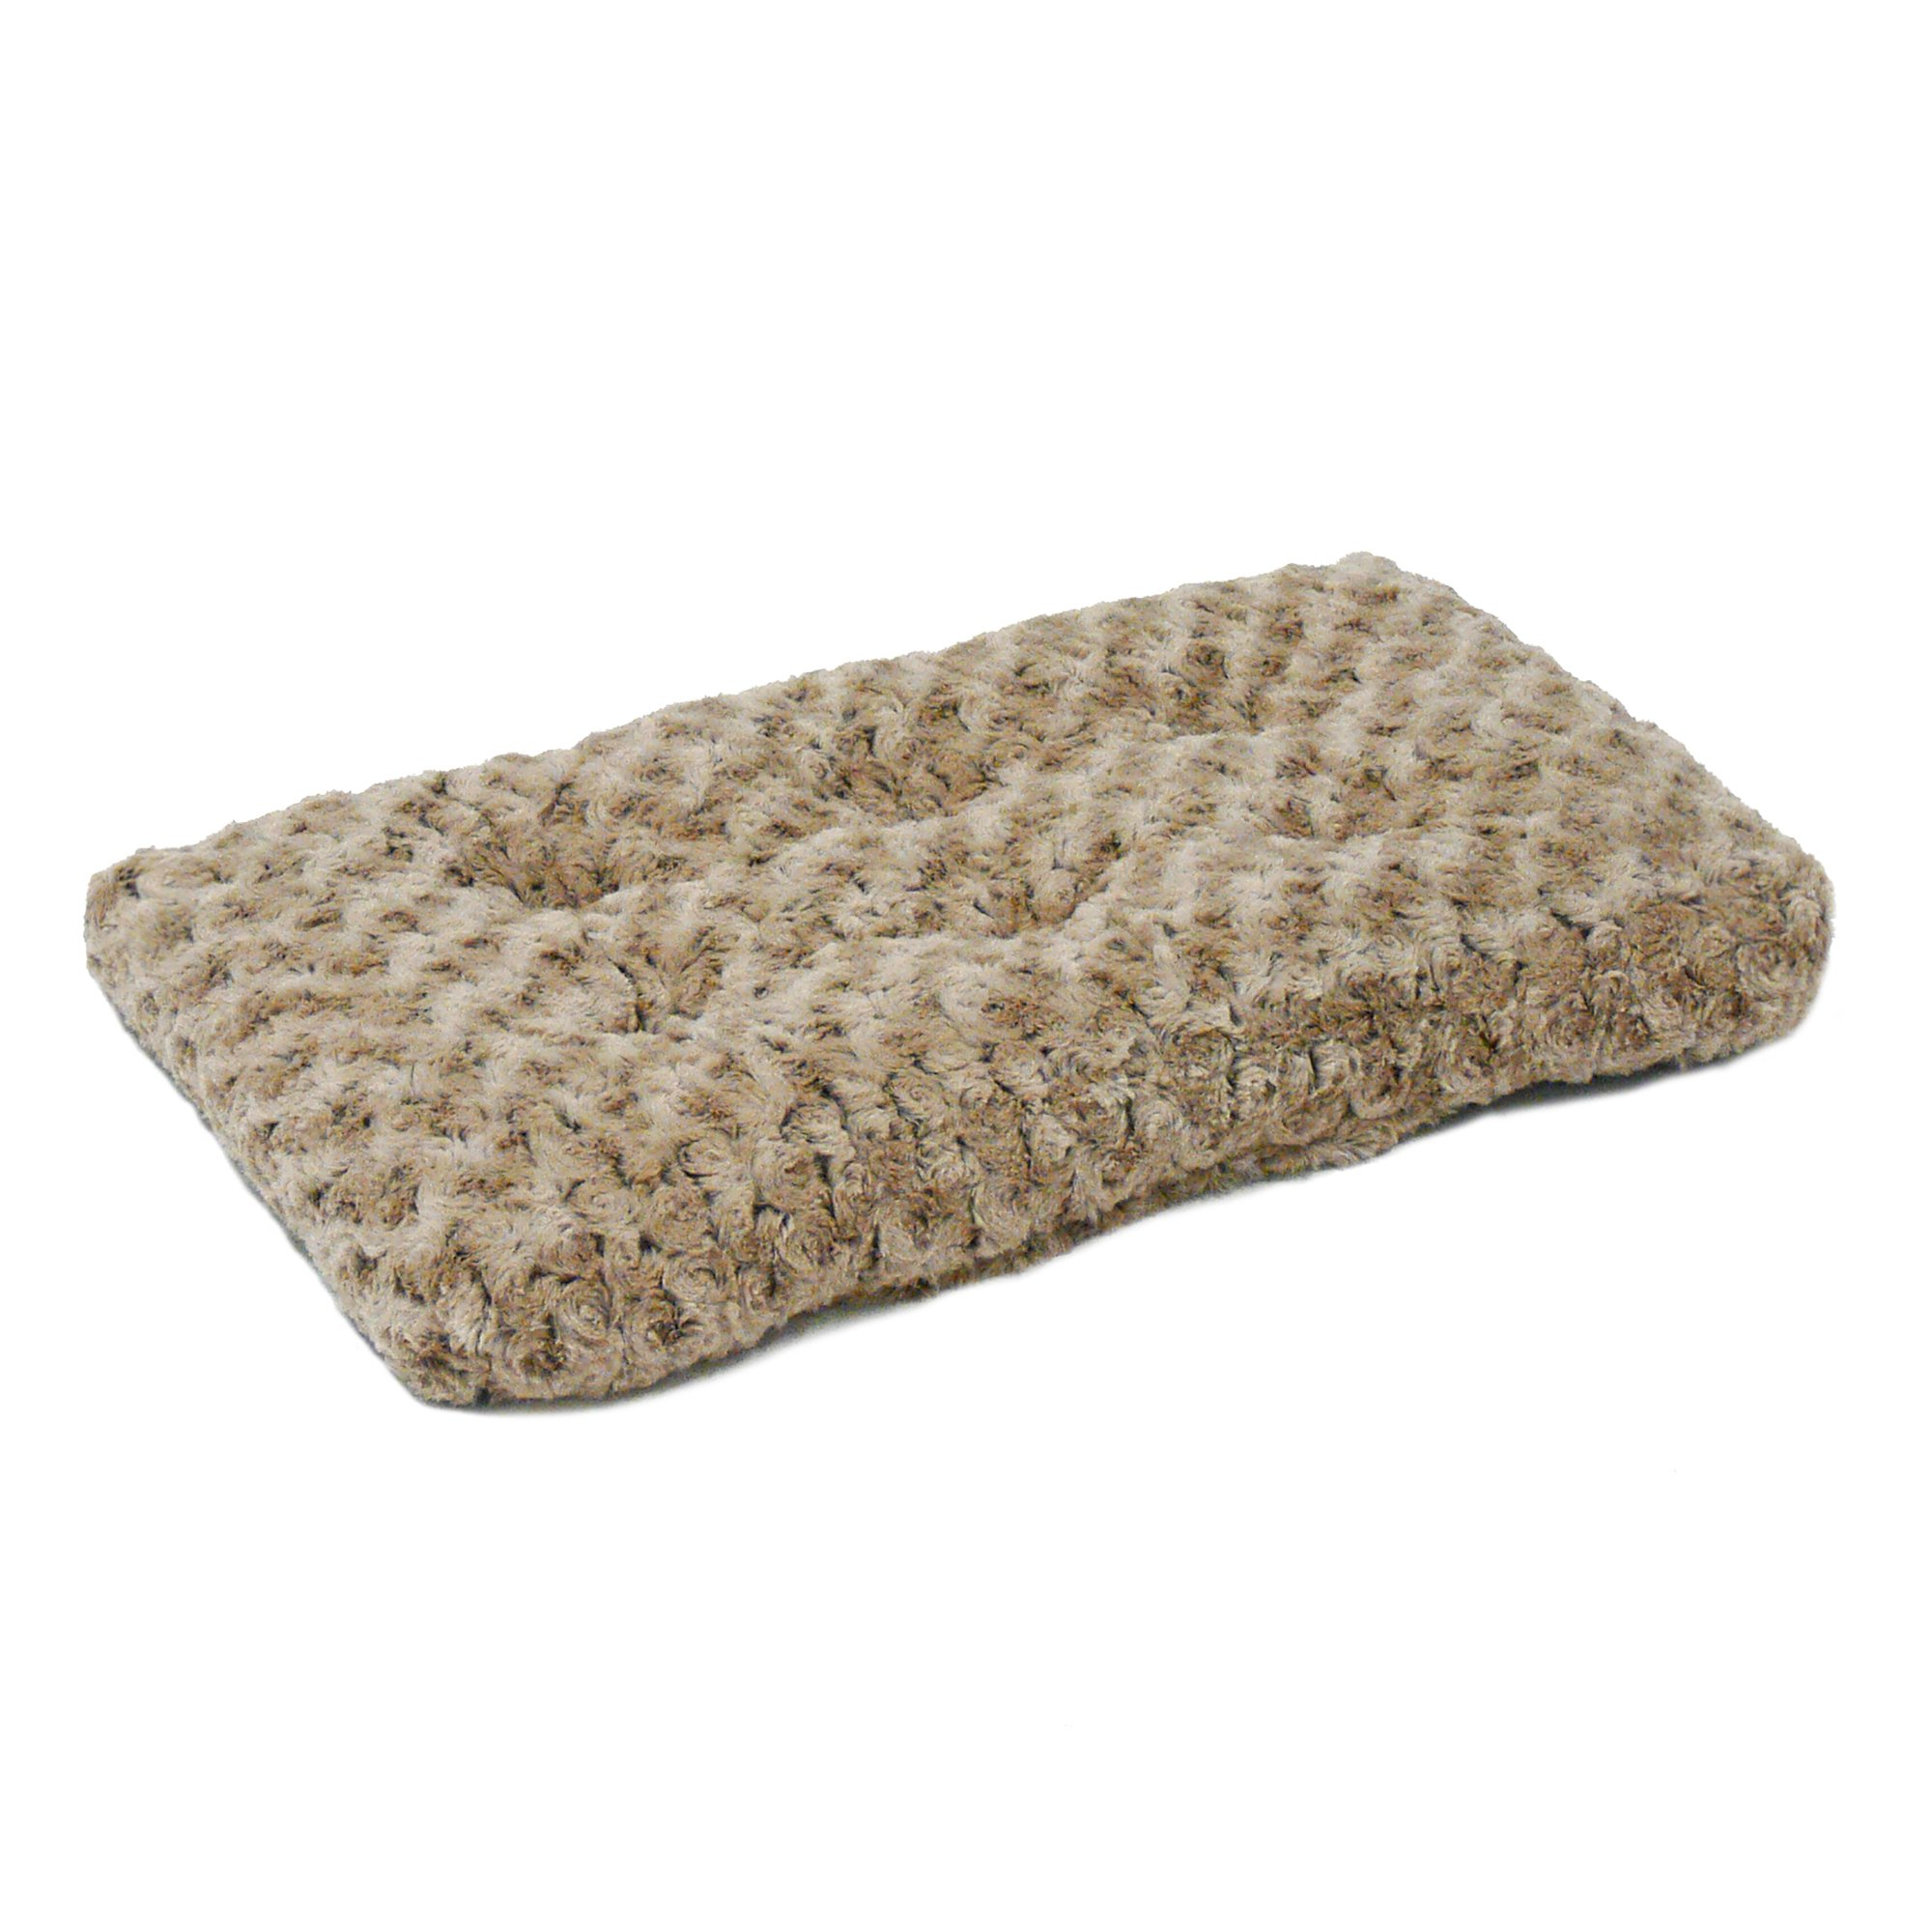 MidWest Quiet Time Pet Bed Deluxe Gray Ombre Swirl 22